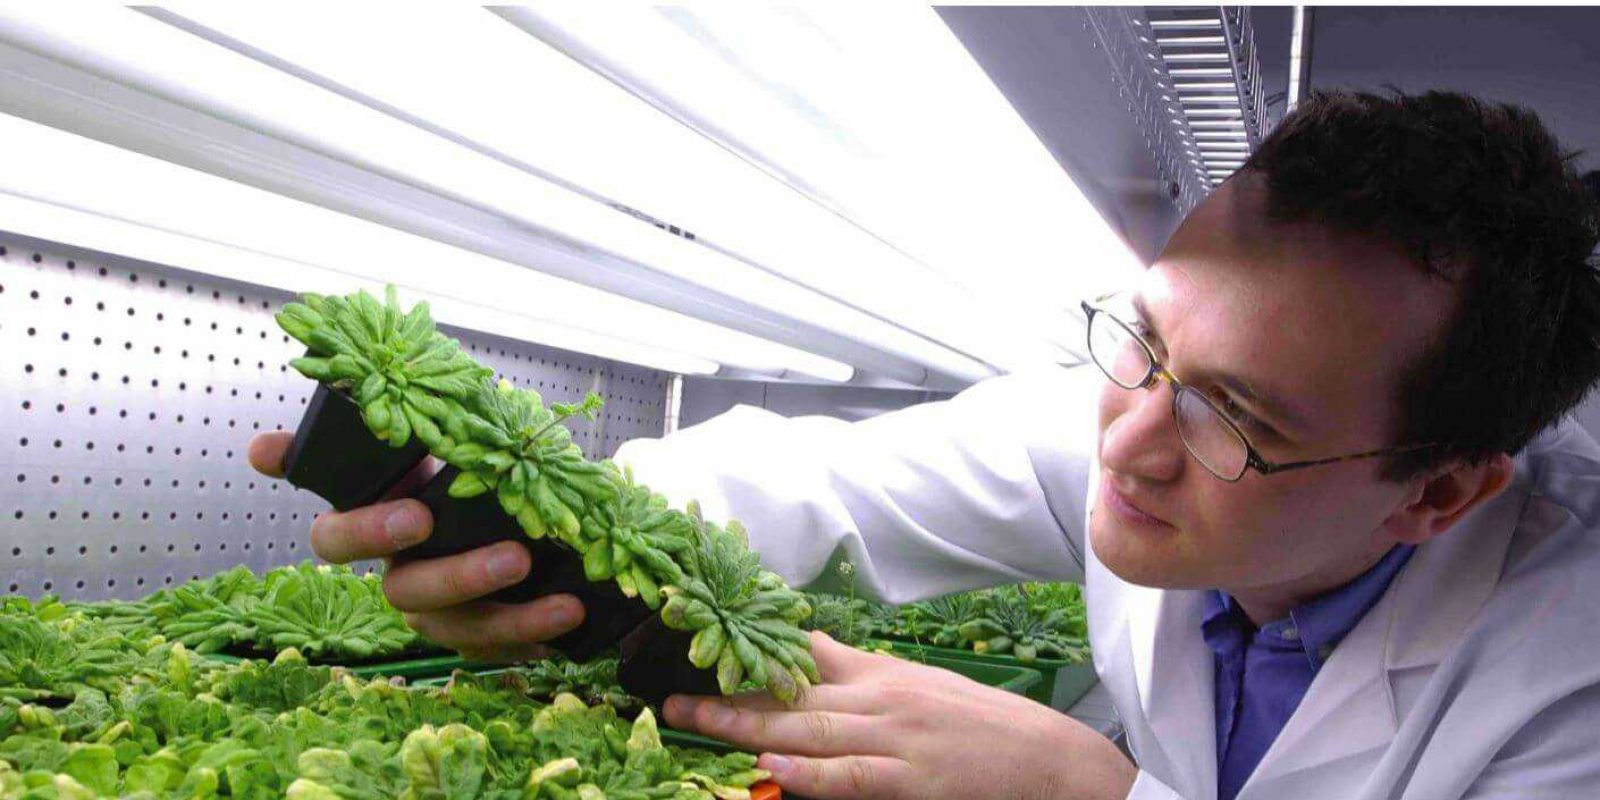 sheffield-university-researcher-plant-growth-room 1